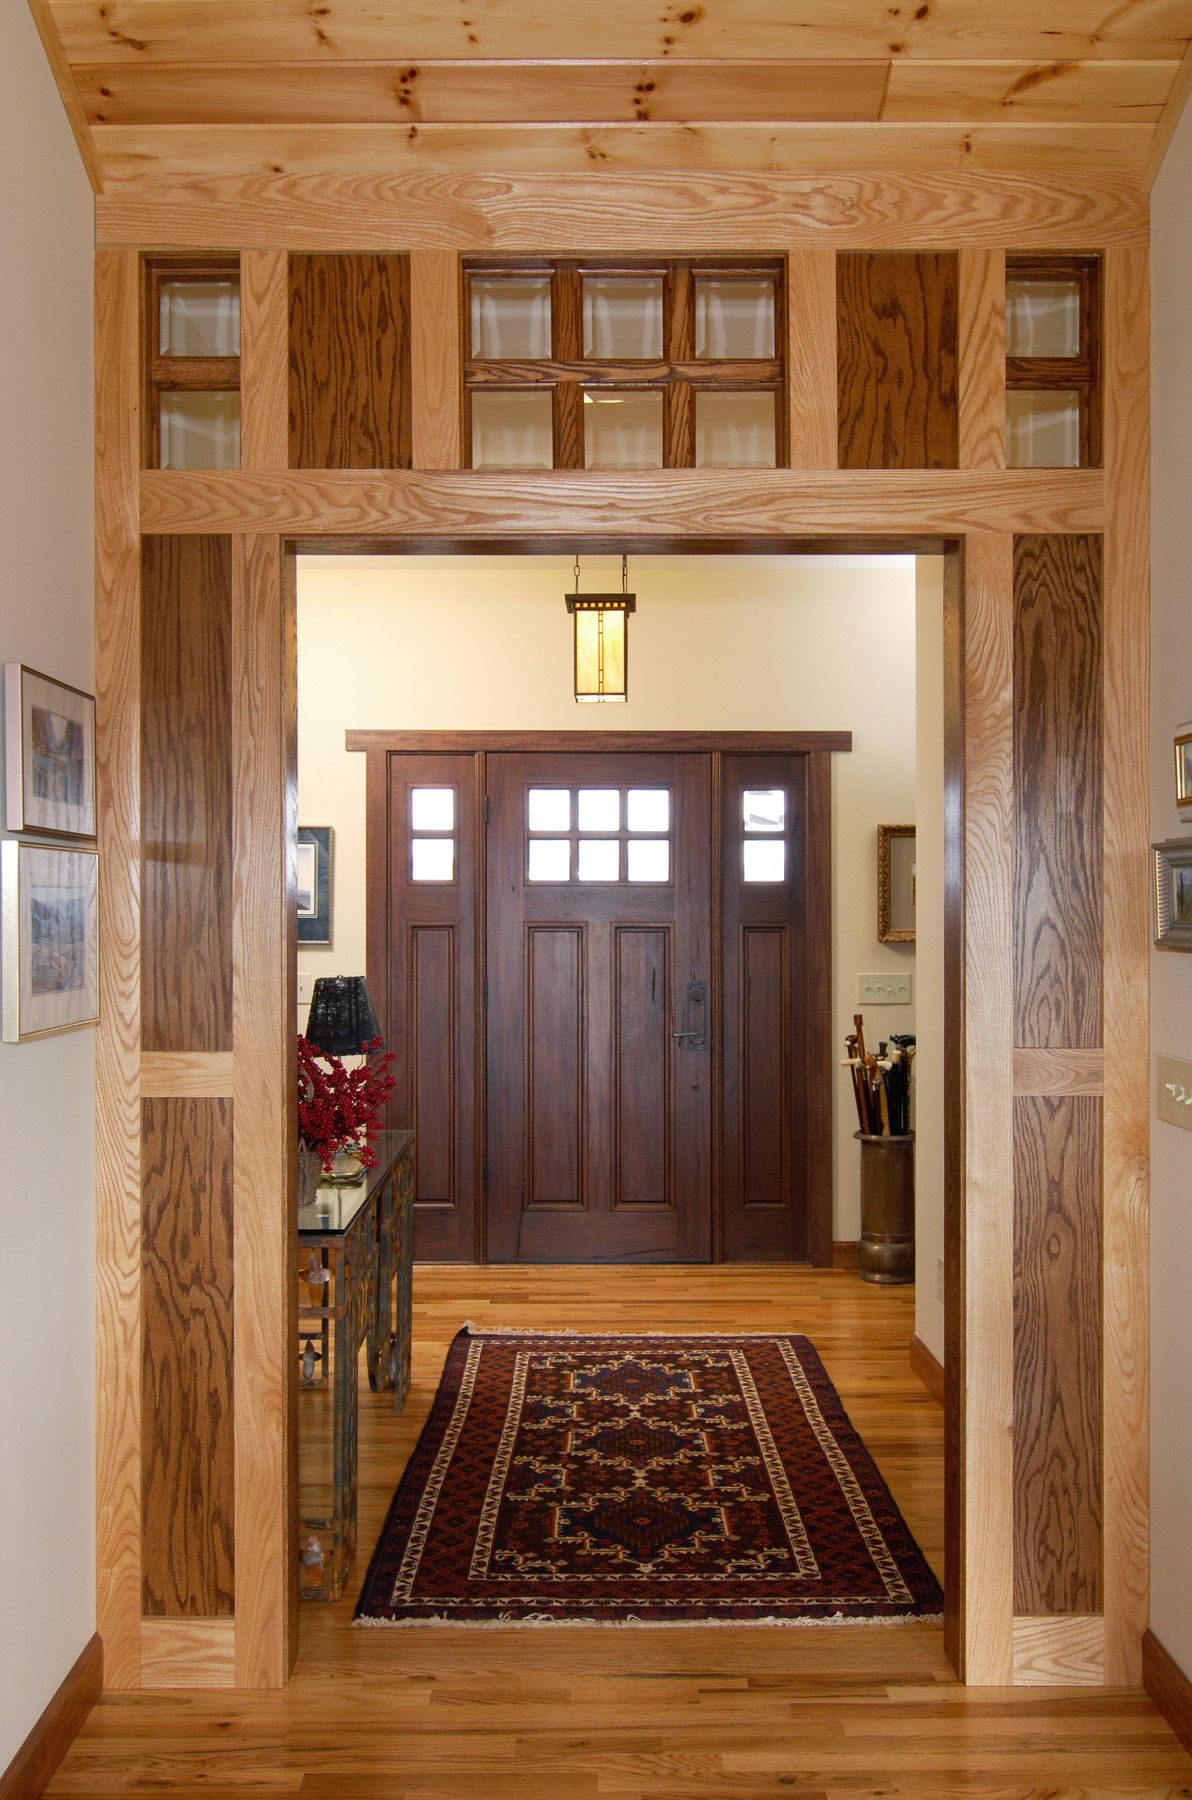 Craftsman Style Home Decorating Ideas: Adirondack, Craftsman Style And Rustic Hand Crafted Homes